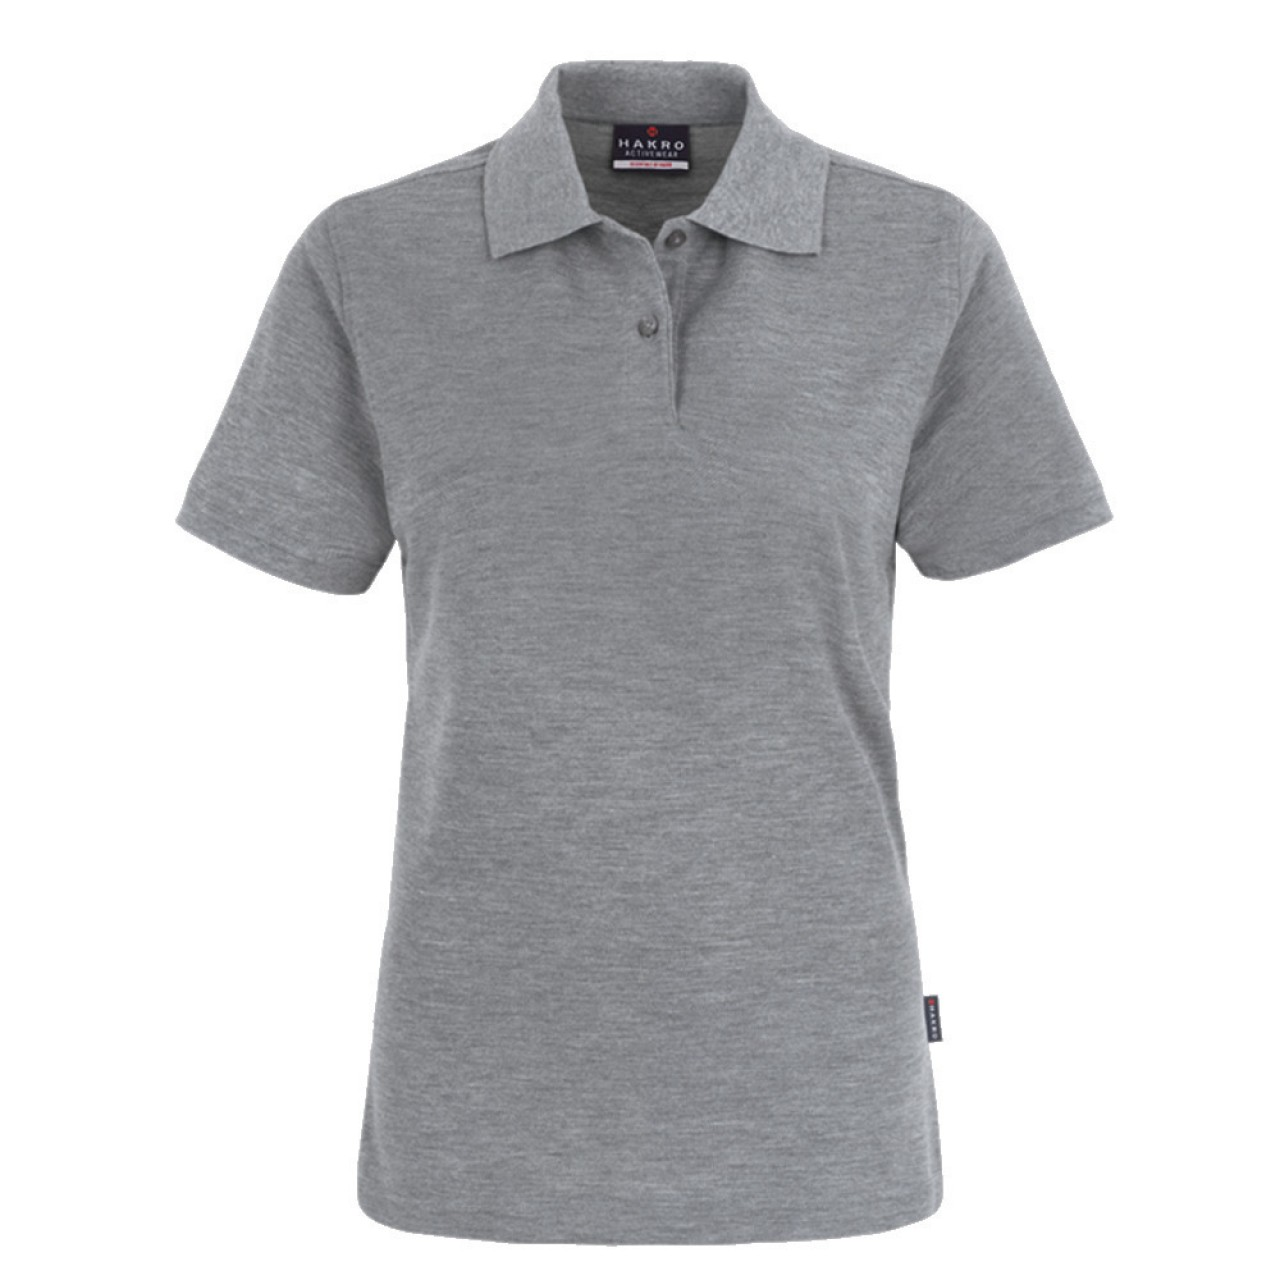 Damen Polo-Shirt Top grau